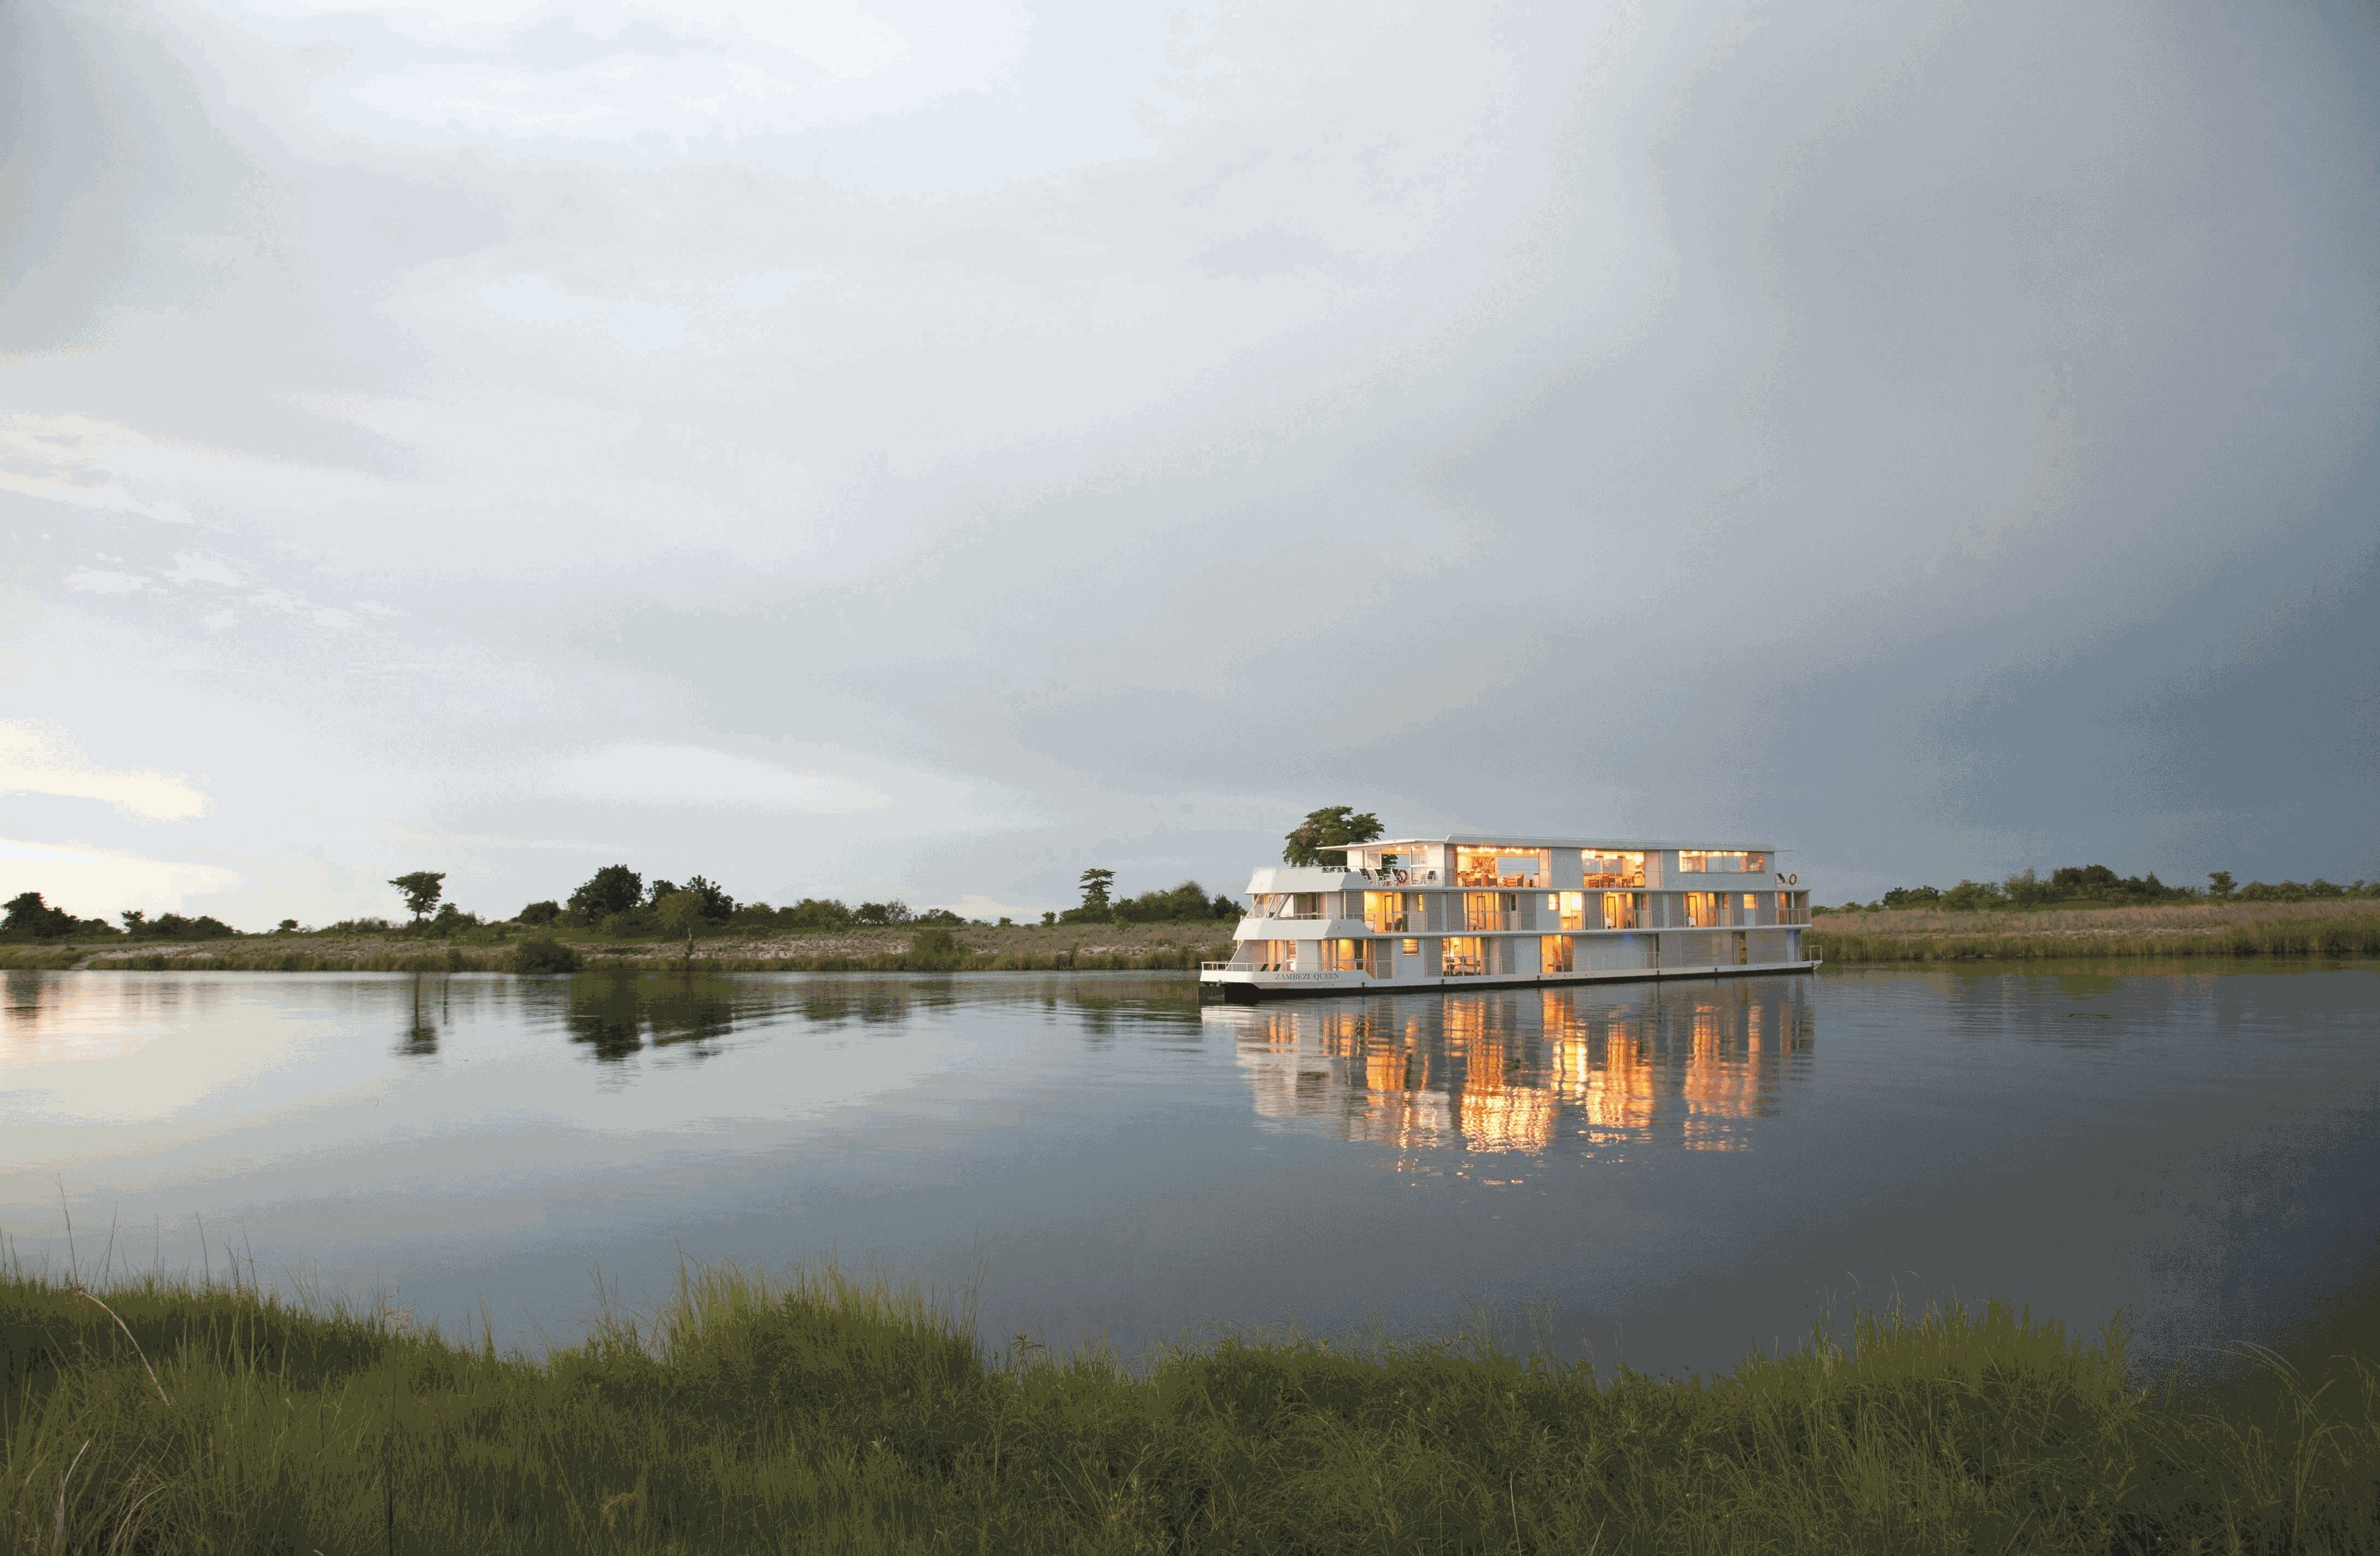 Lot 39 - Zambezi Queen Collection Moving along the banks of the great Chobe River, Zambezi Queen is a 5-star,